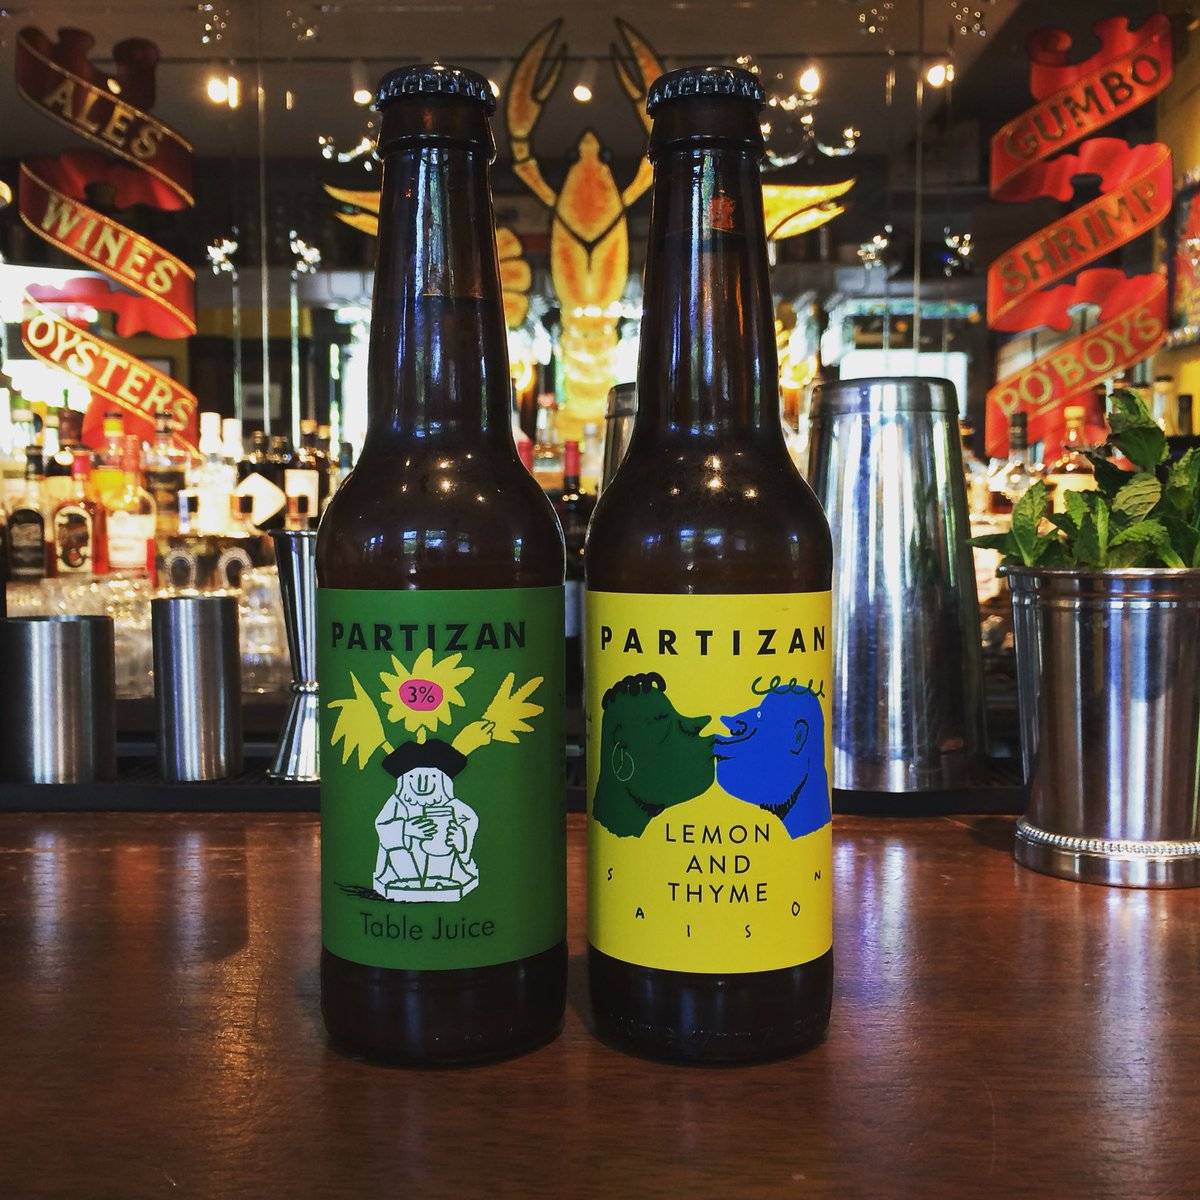 What to do on this most lovely of hump day Wednesday's? Come here and enjoy 2 for 1 bottles and cans! We love @PartizanBrewing! Live jazz with Pedro and his sexy guitar tonight from 7-9! #plaqueminelock